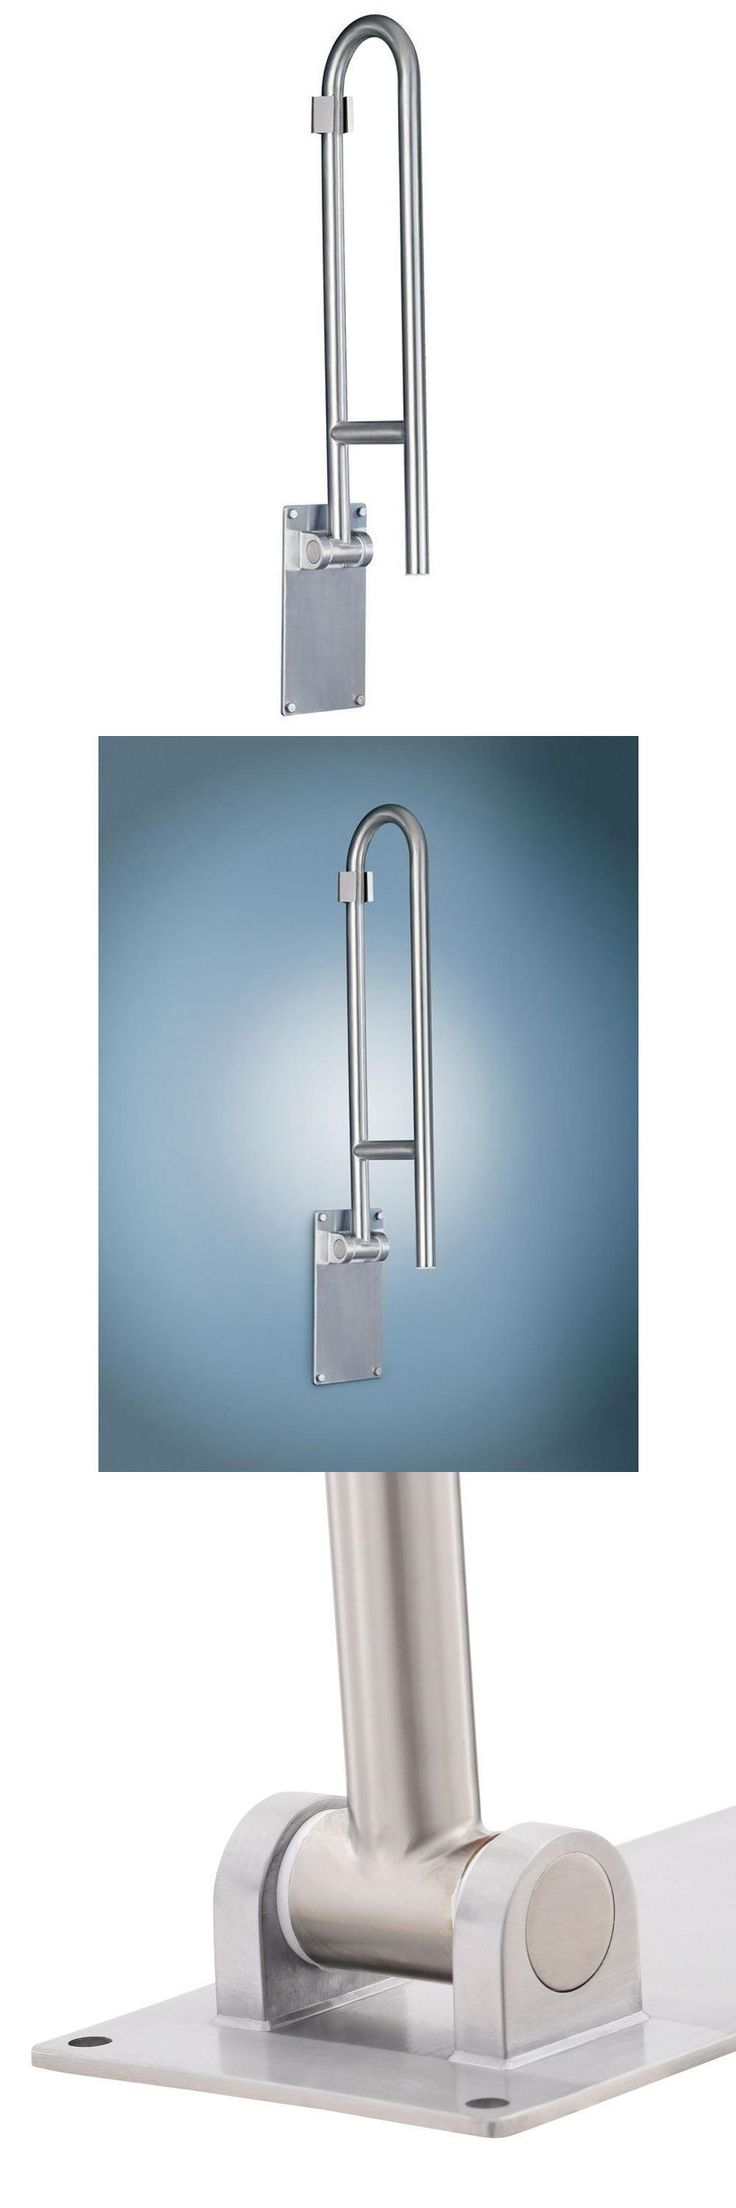 Handles and Rails: Moen R8960fd 30-Inch Bathroom Grab Bar, Stainless Steel Commercial Assist Grip -> BUY IT NOW ONLY: $79.99 on eBay!